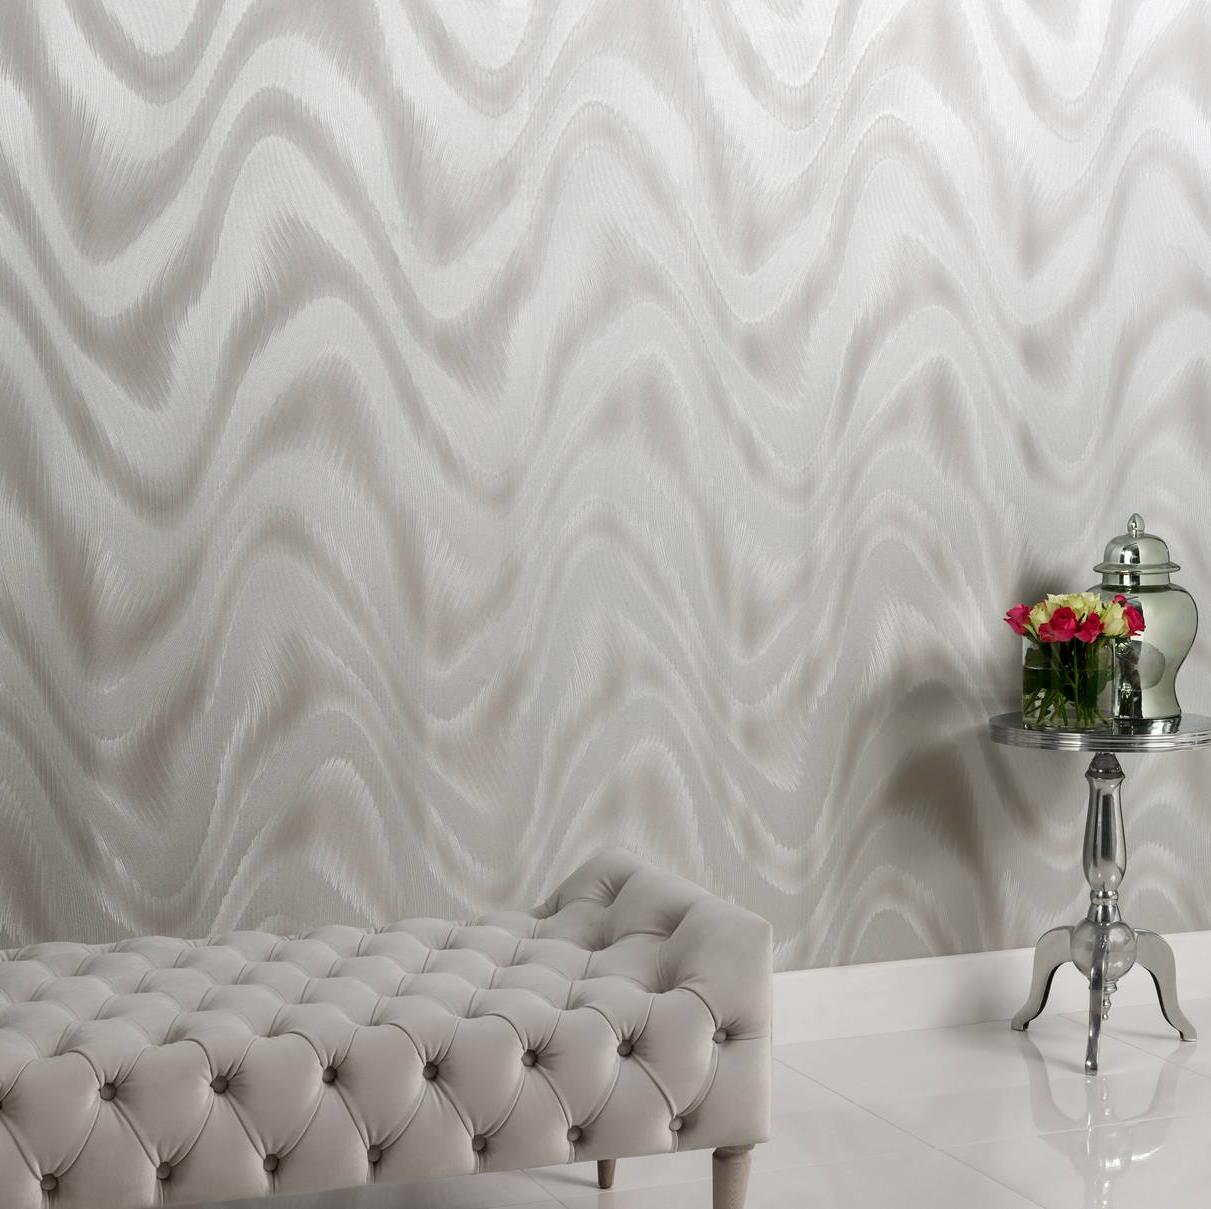 Surface wallpaper by Today Interiors available from Fabric Gallery & Interiors